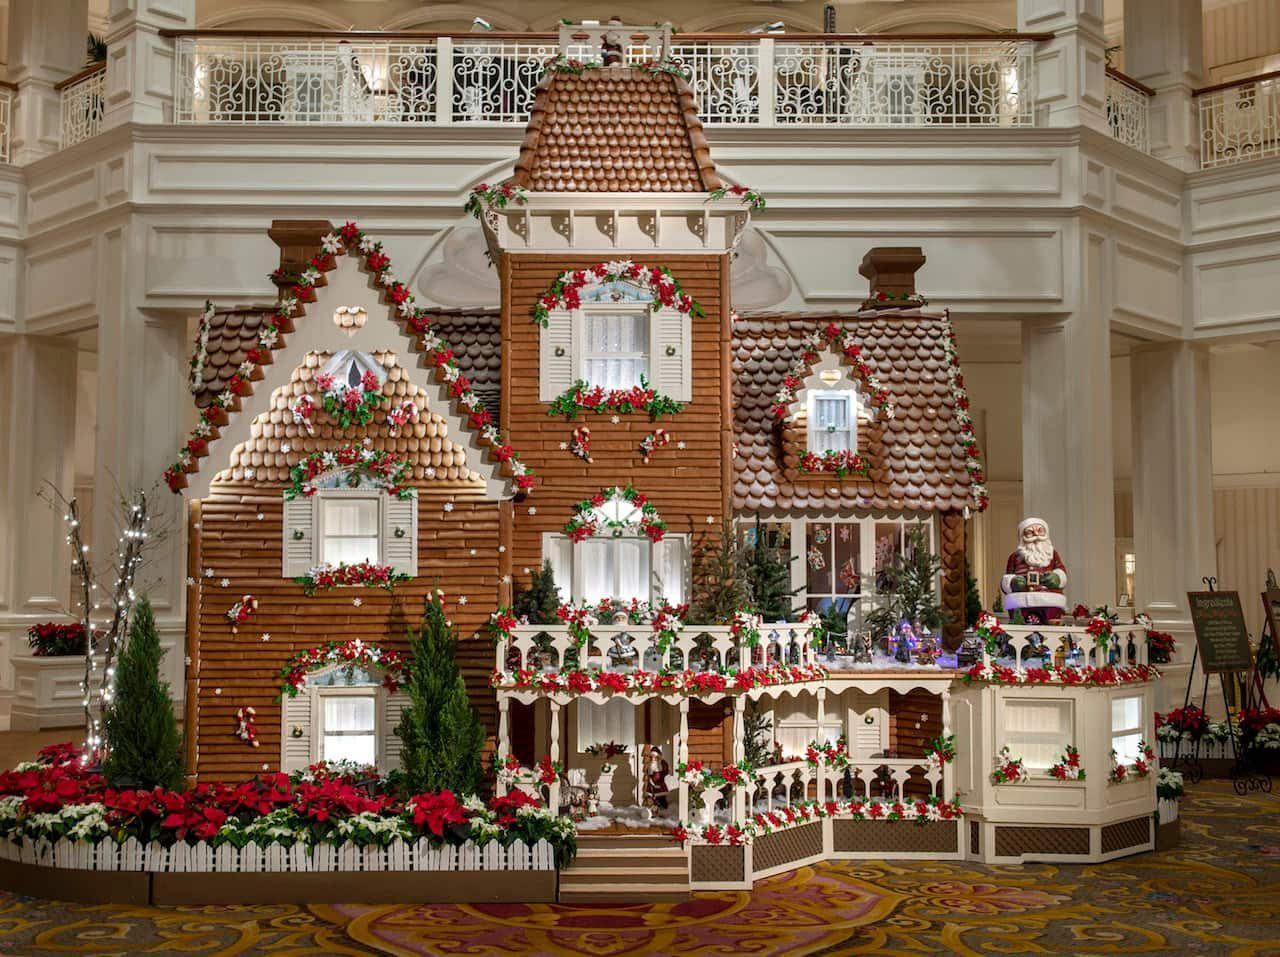 2018 Holiday Display at Disney's Grand Floridian Resort & Spa